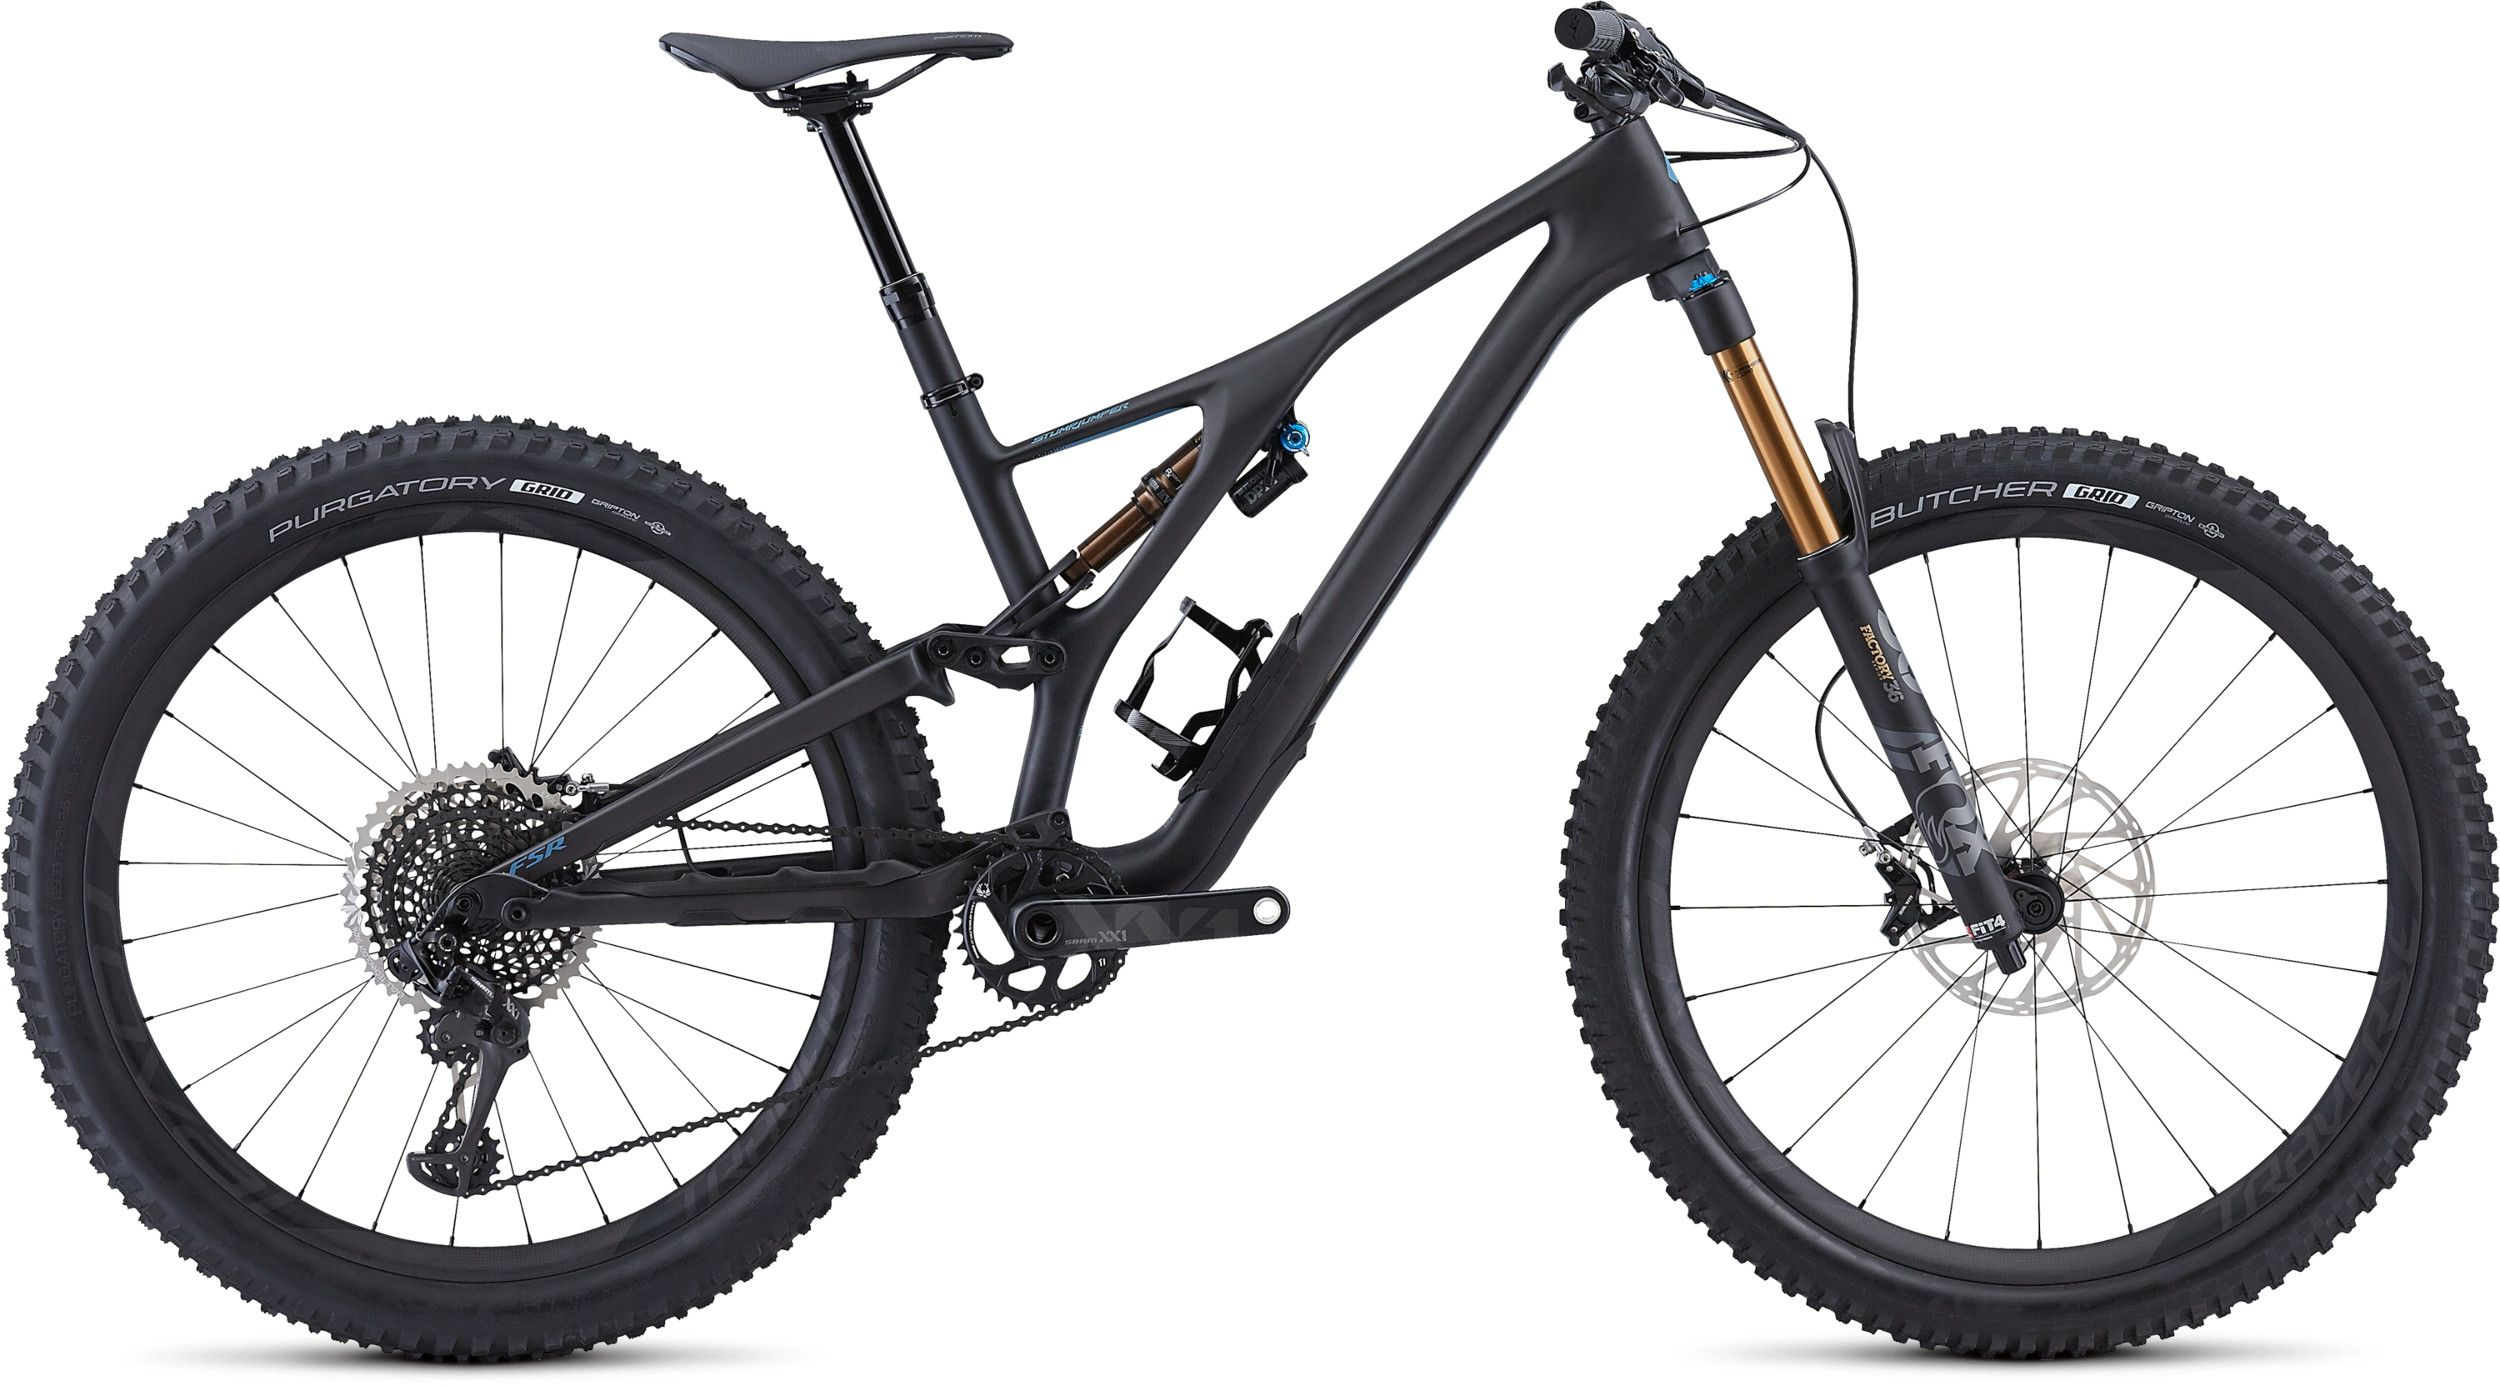 Specialized Sworks Stumpjumper 27 5 Mountain Bike 2019 Carbon